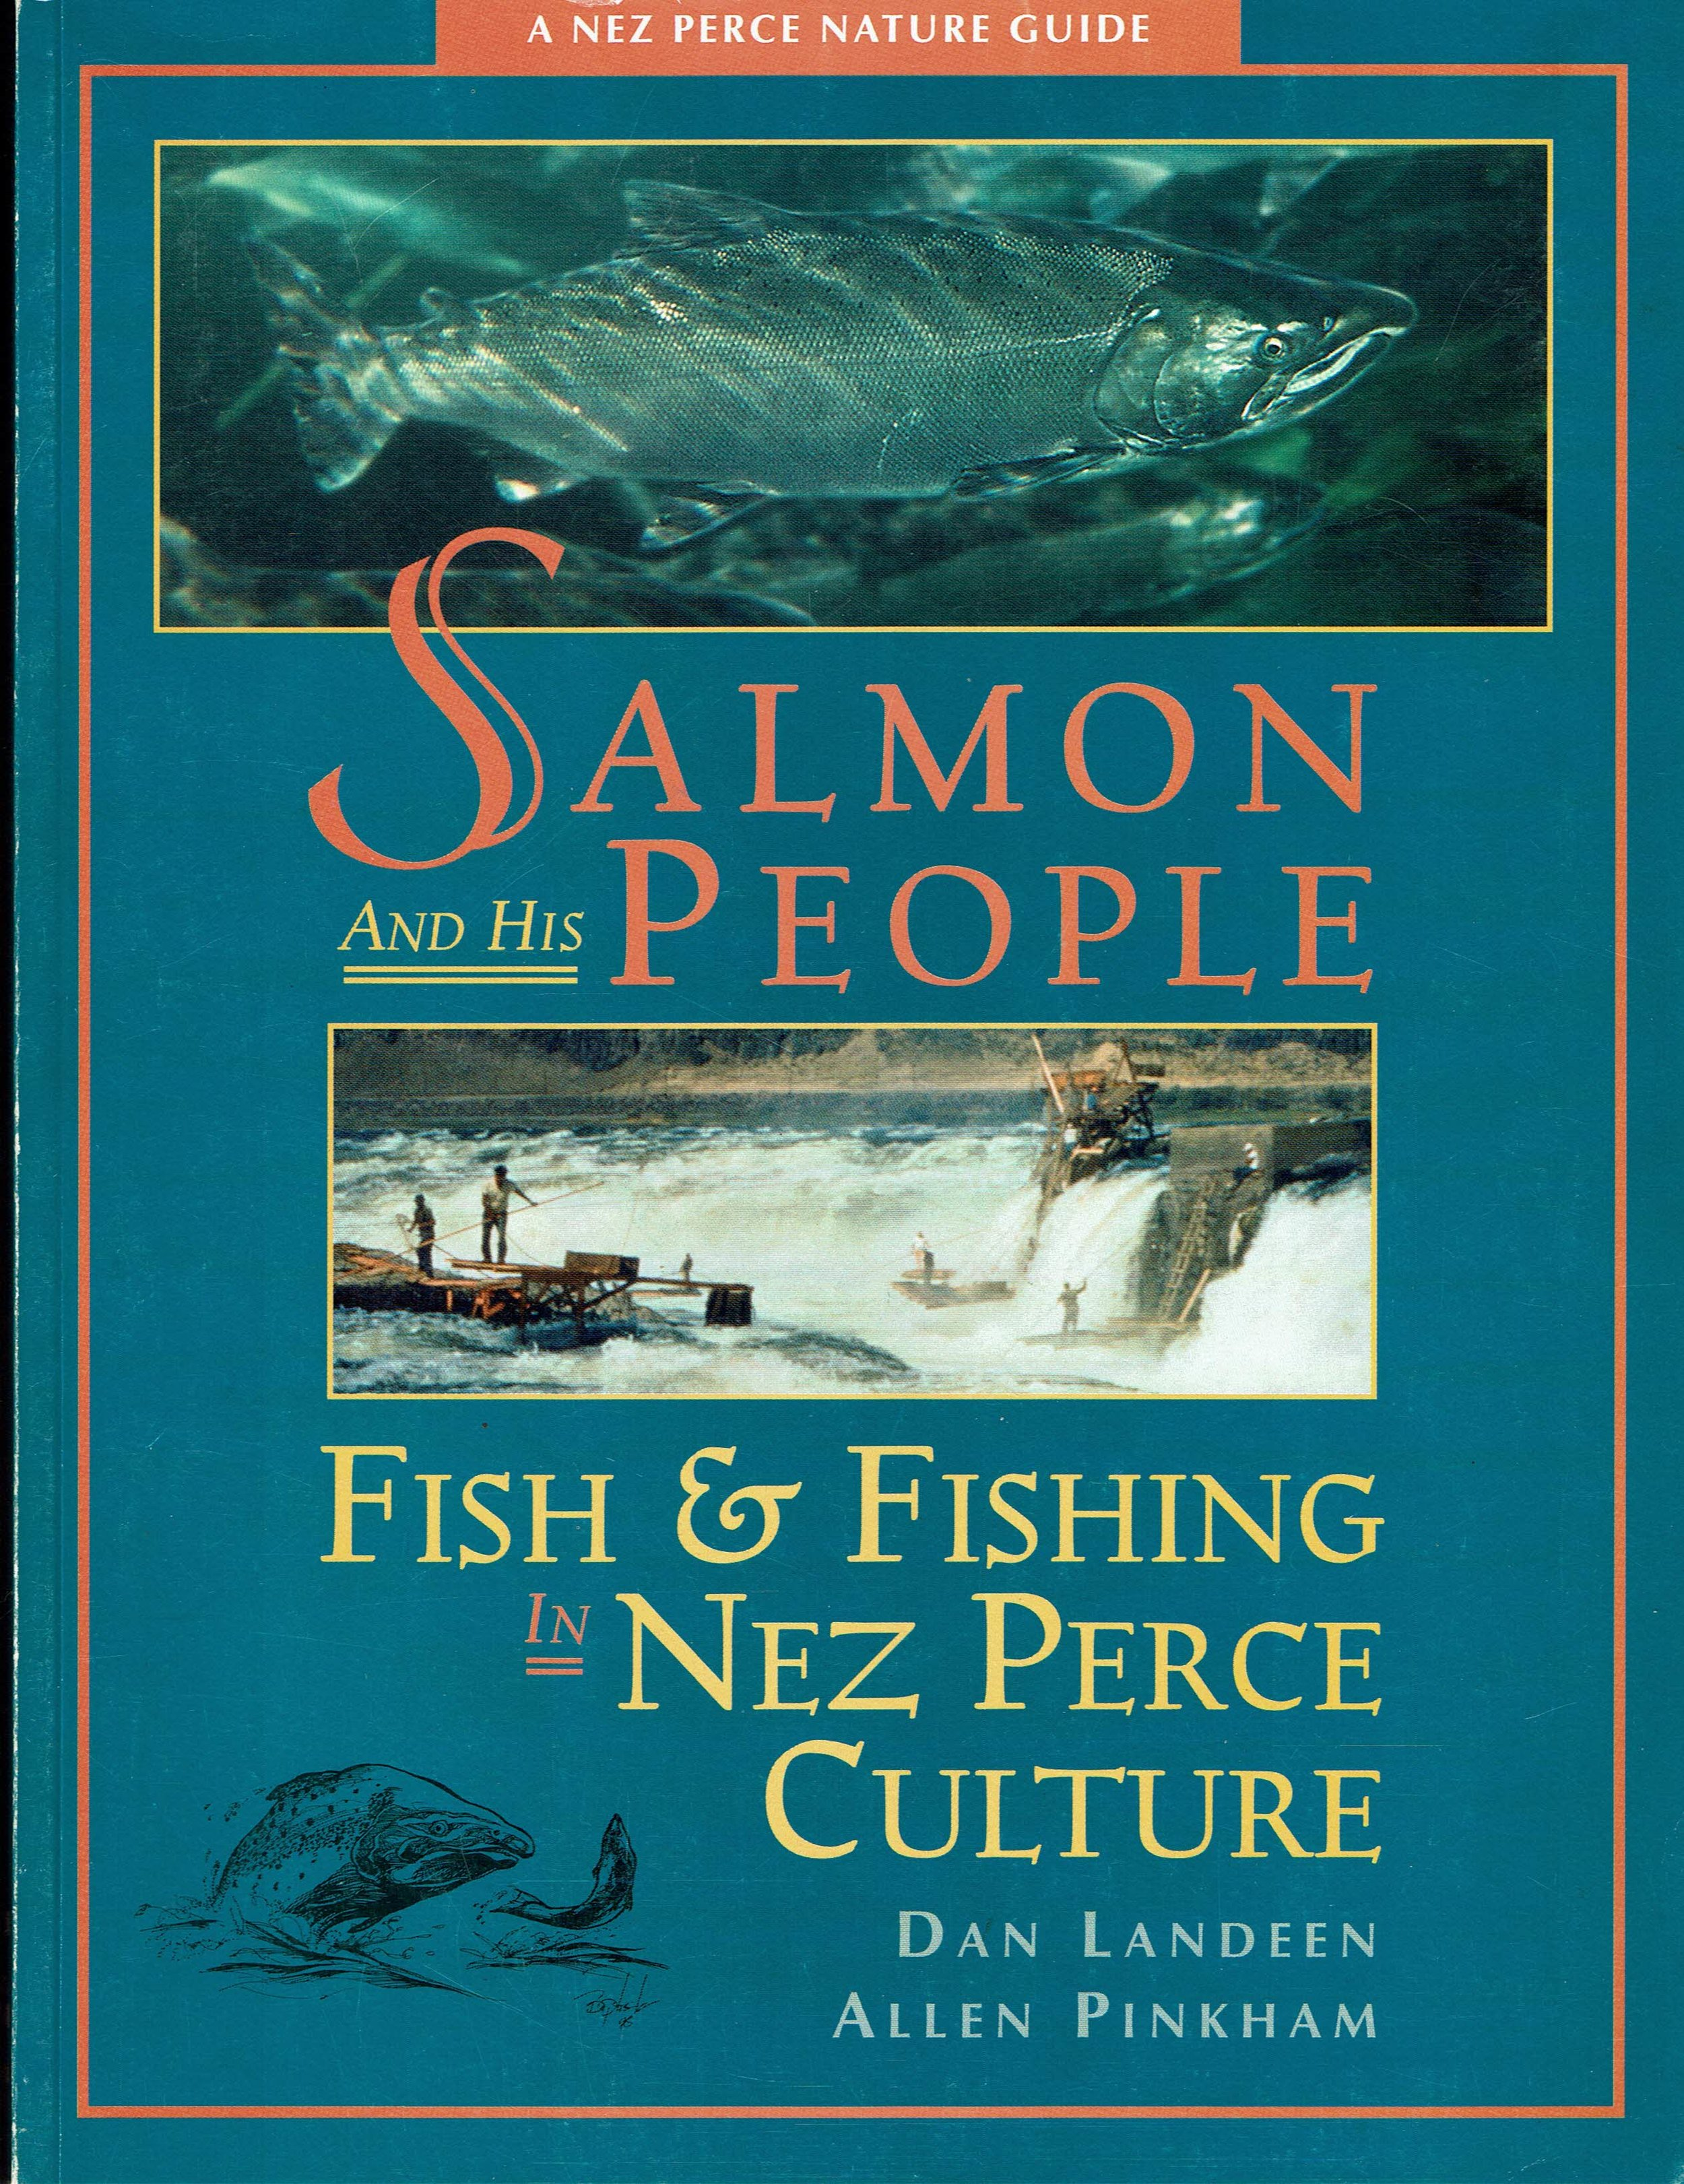 Dan Landeen, and Allen Pinkham.  SALMON AND HIS PEOPLE published 1999